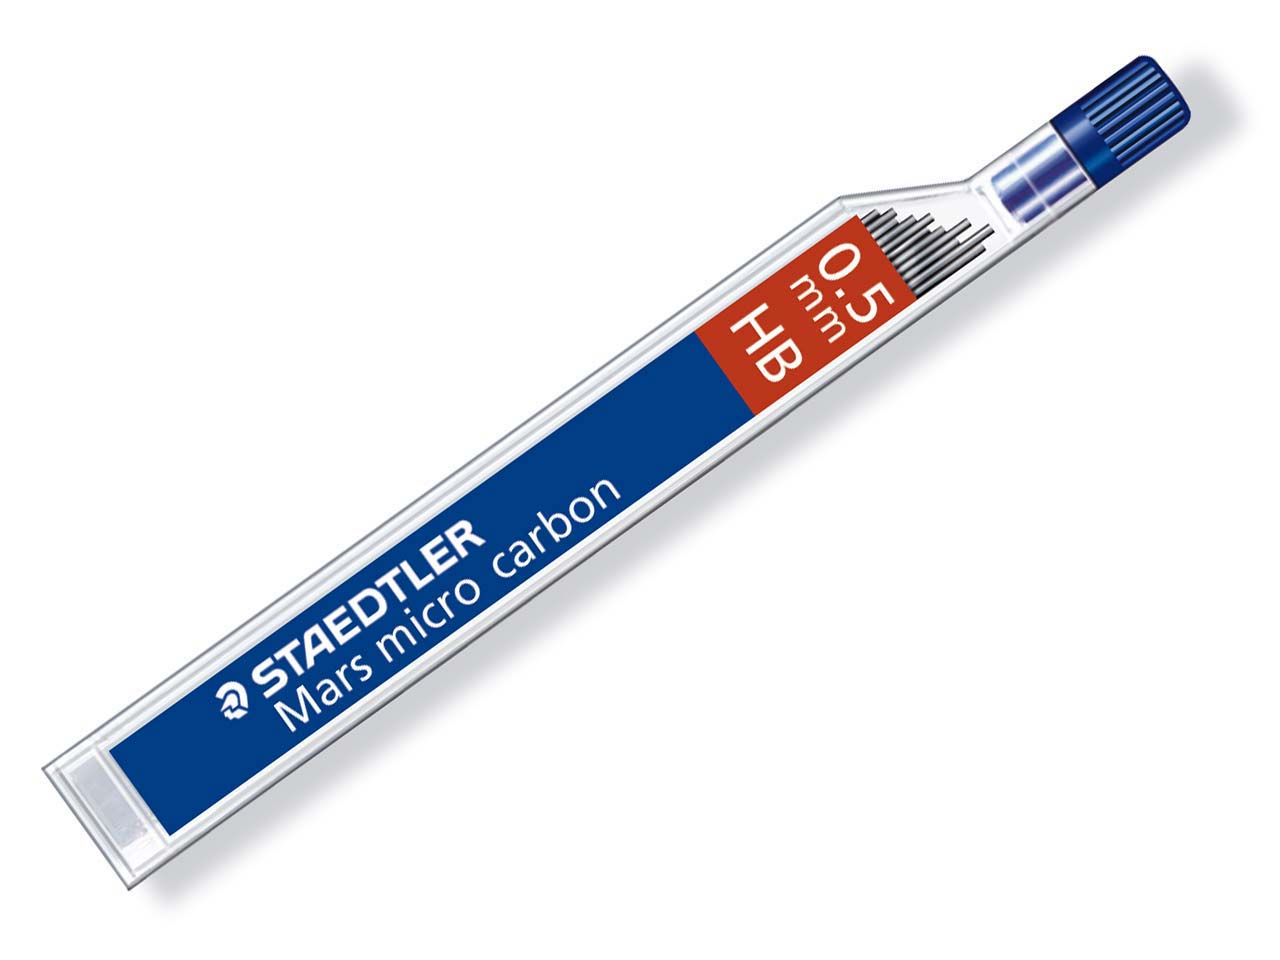 Staedtler Marsmicro Mechanical      Pencil Replacement Leads 0.5mm, Hb, Tube Of 12 Leads